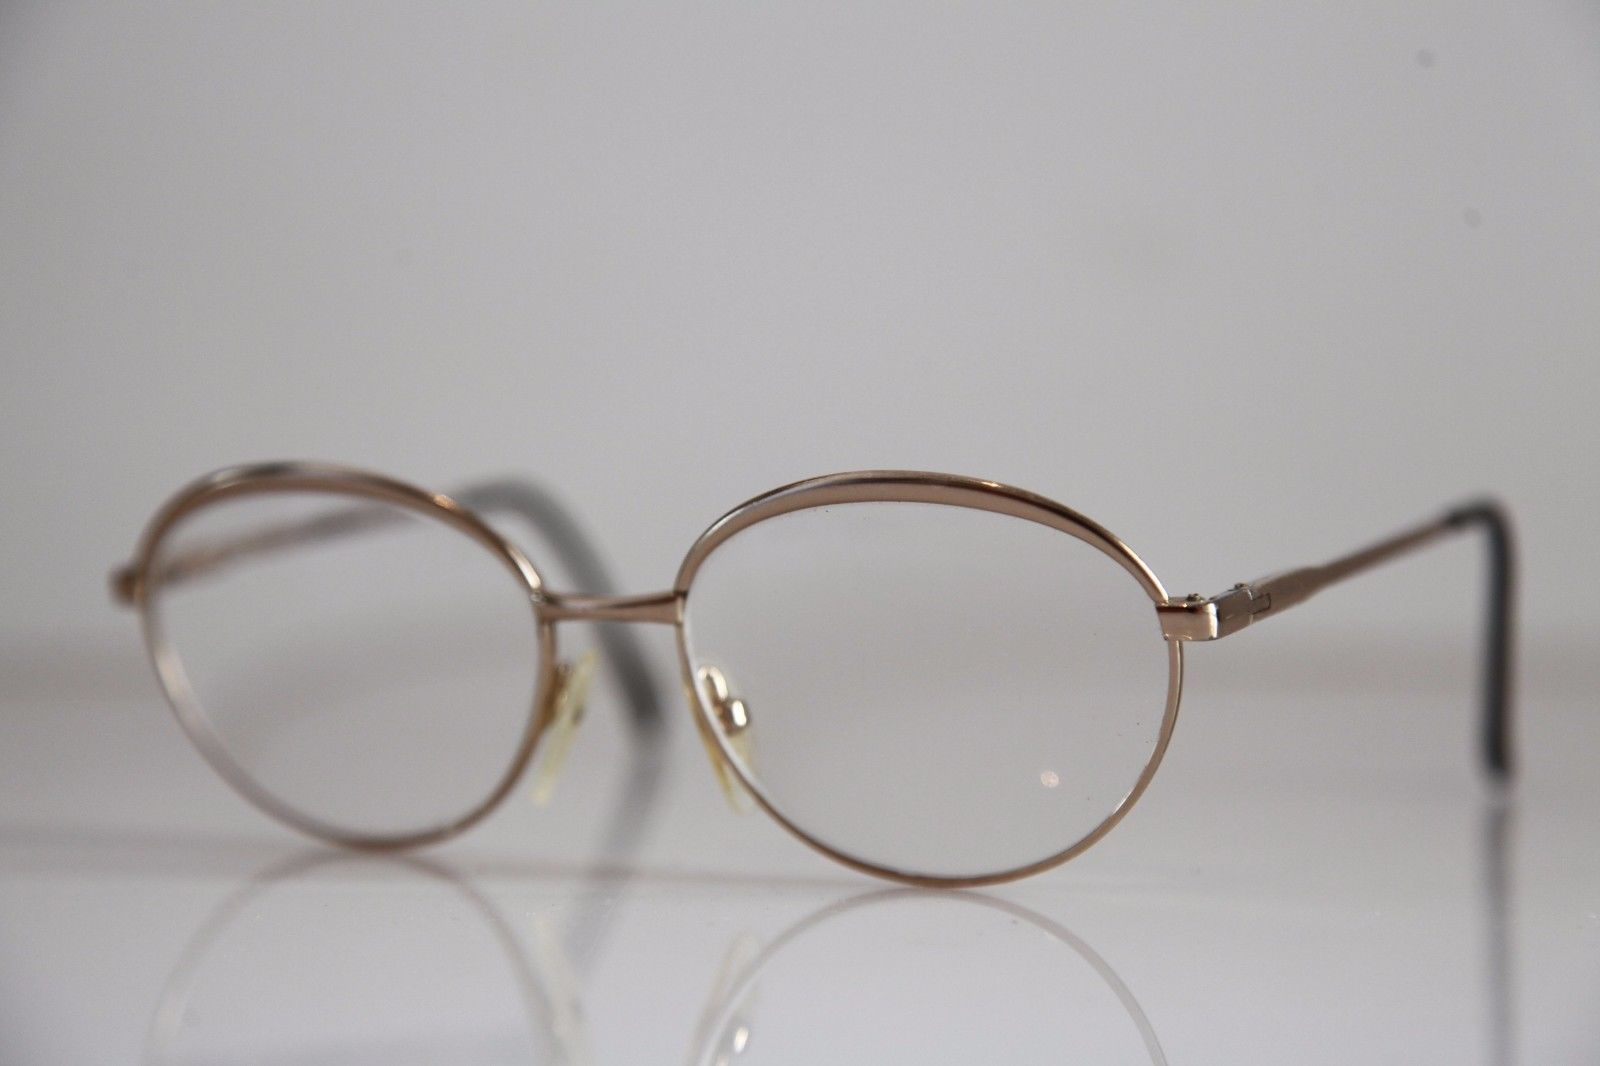 SFEROFLEX Eyewear, Gold  Frame,  RX-Able Prescription Lenses.  made in ITALY 2